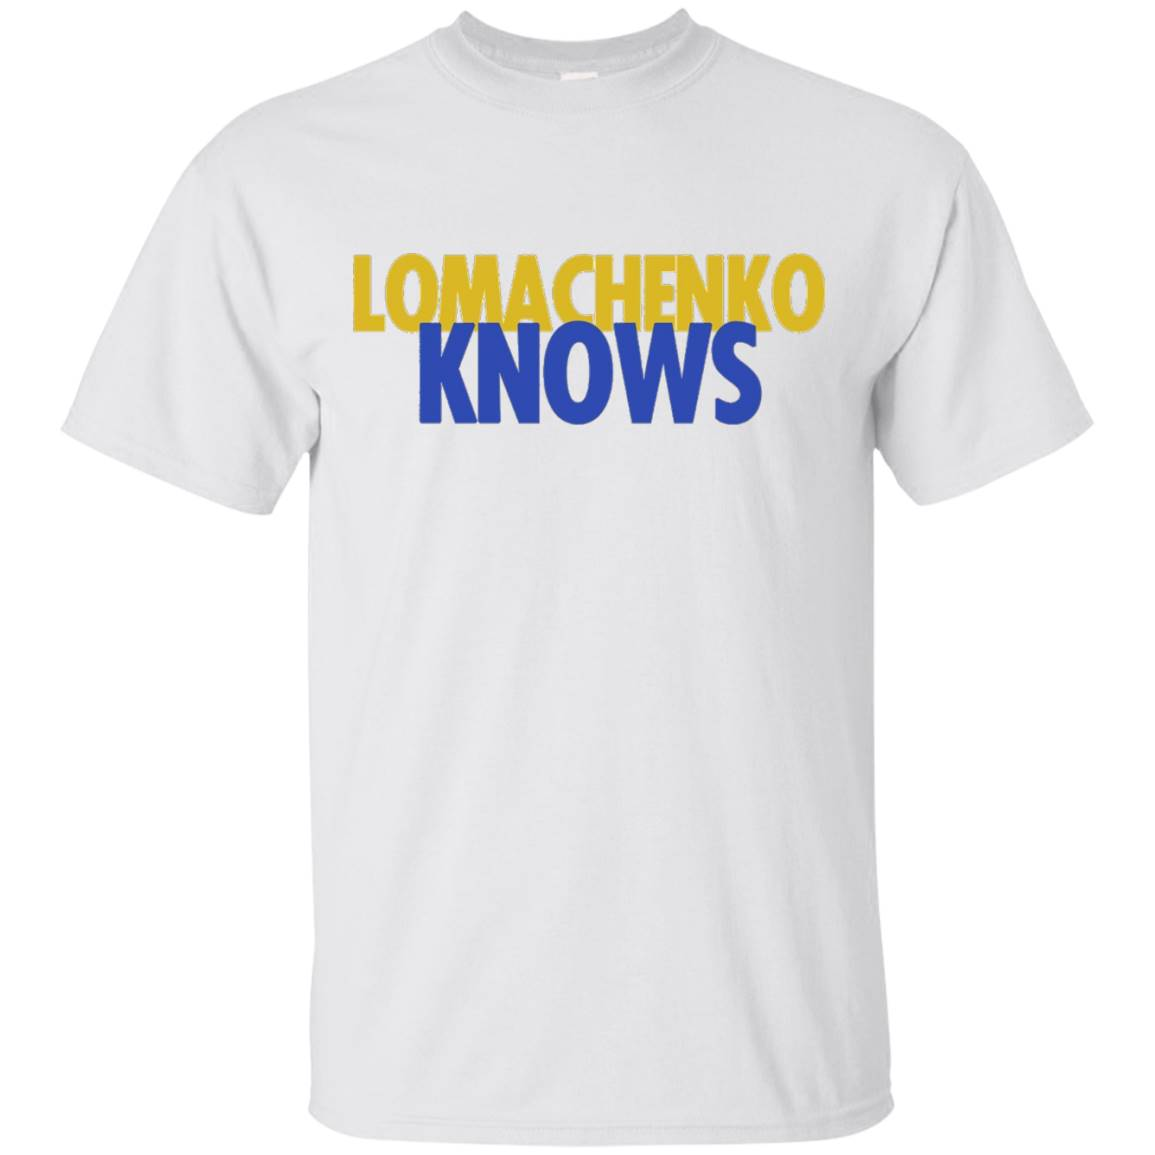 Lomachenko Knows T-Shirt